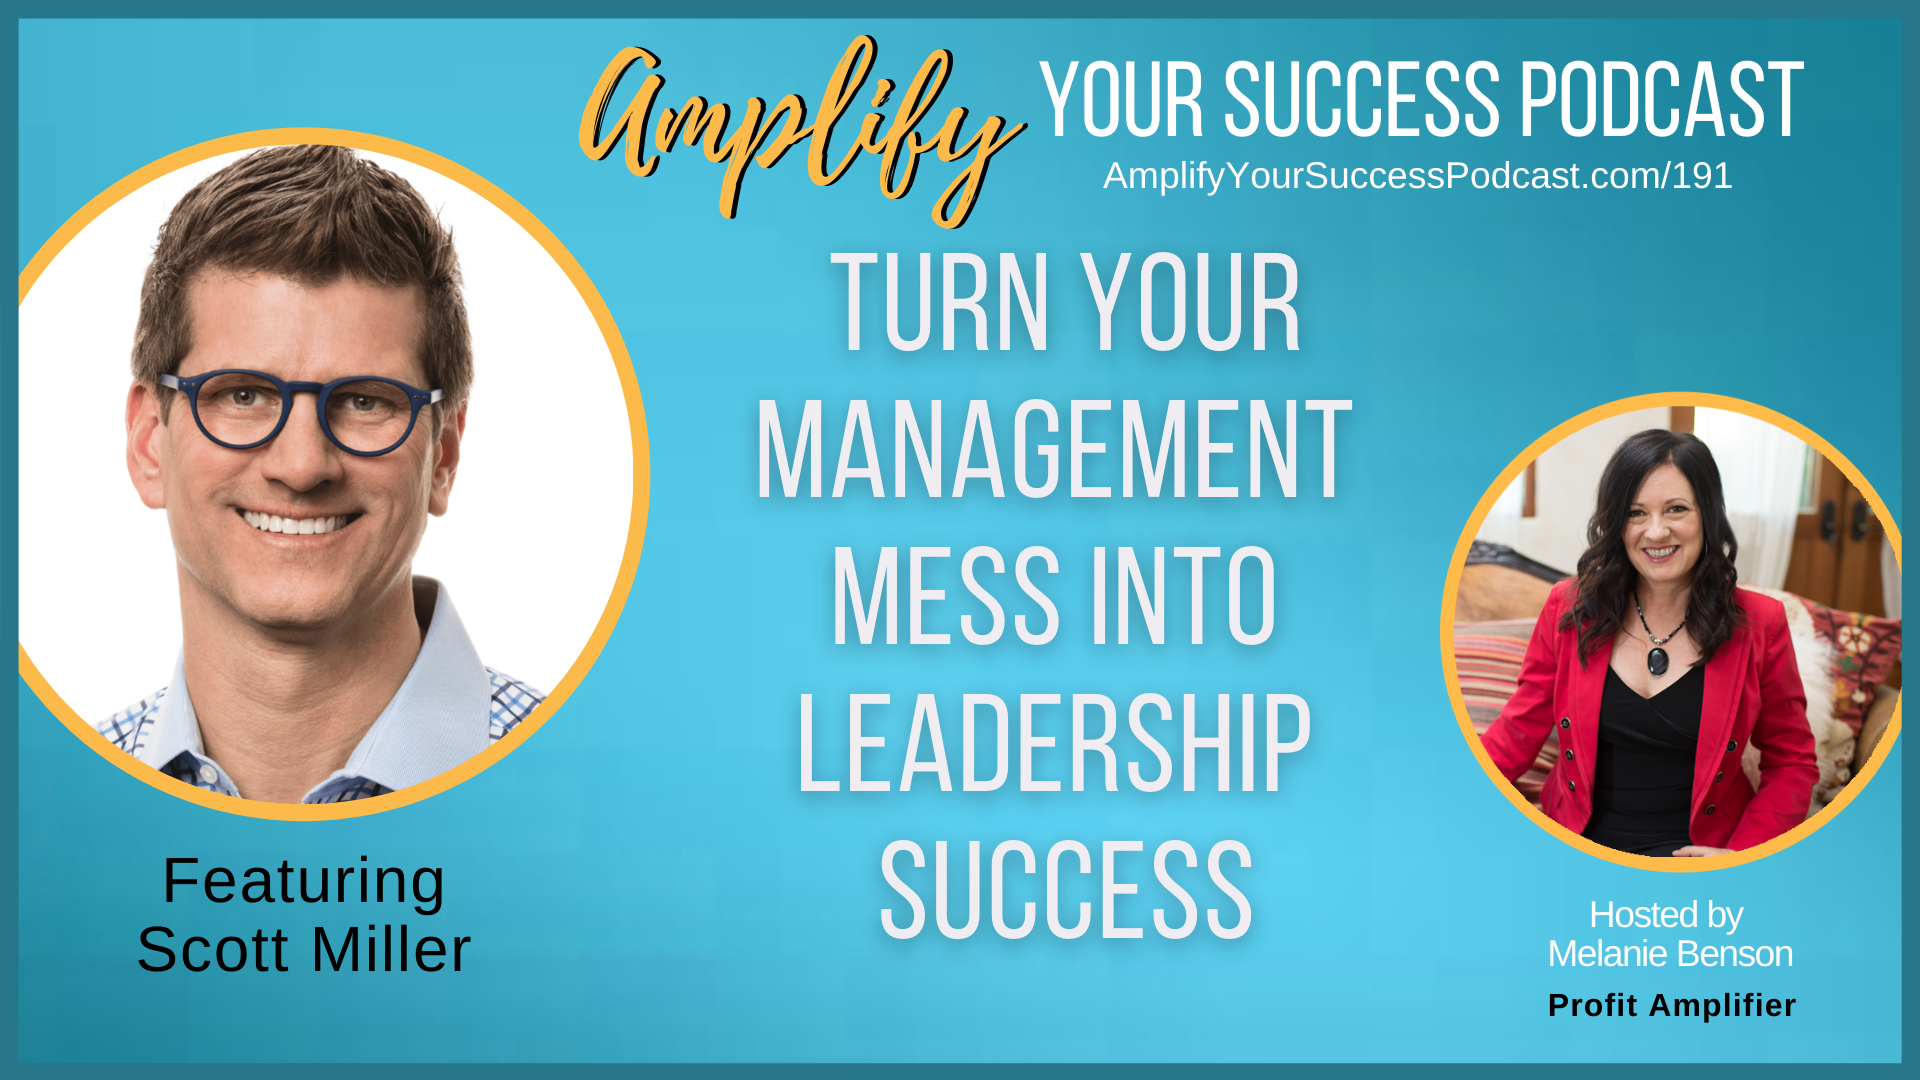 Turn Management Mess to Leadership Success with Scott Miller on Amplify Your Success Podcast